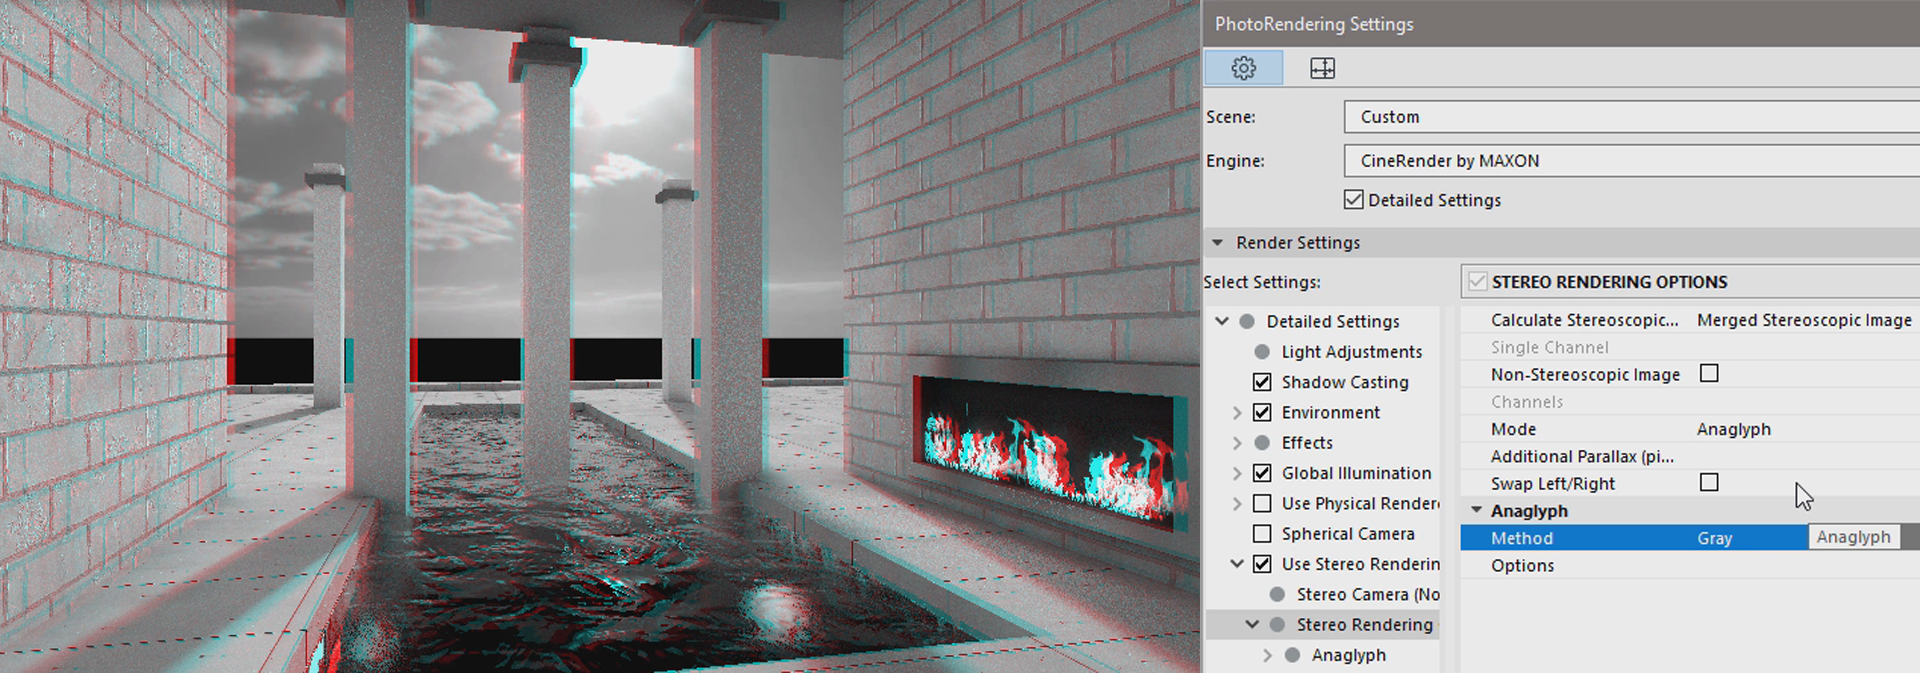 AC22-CineRender-Stereoscopic-Rendering-Anaglyph.png